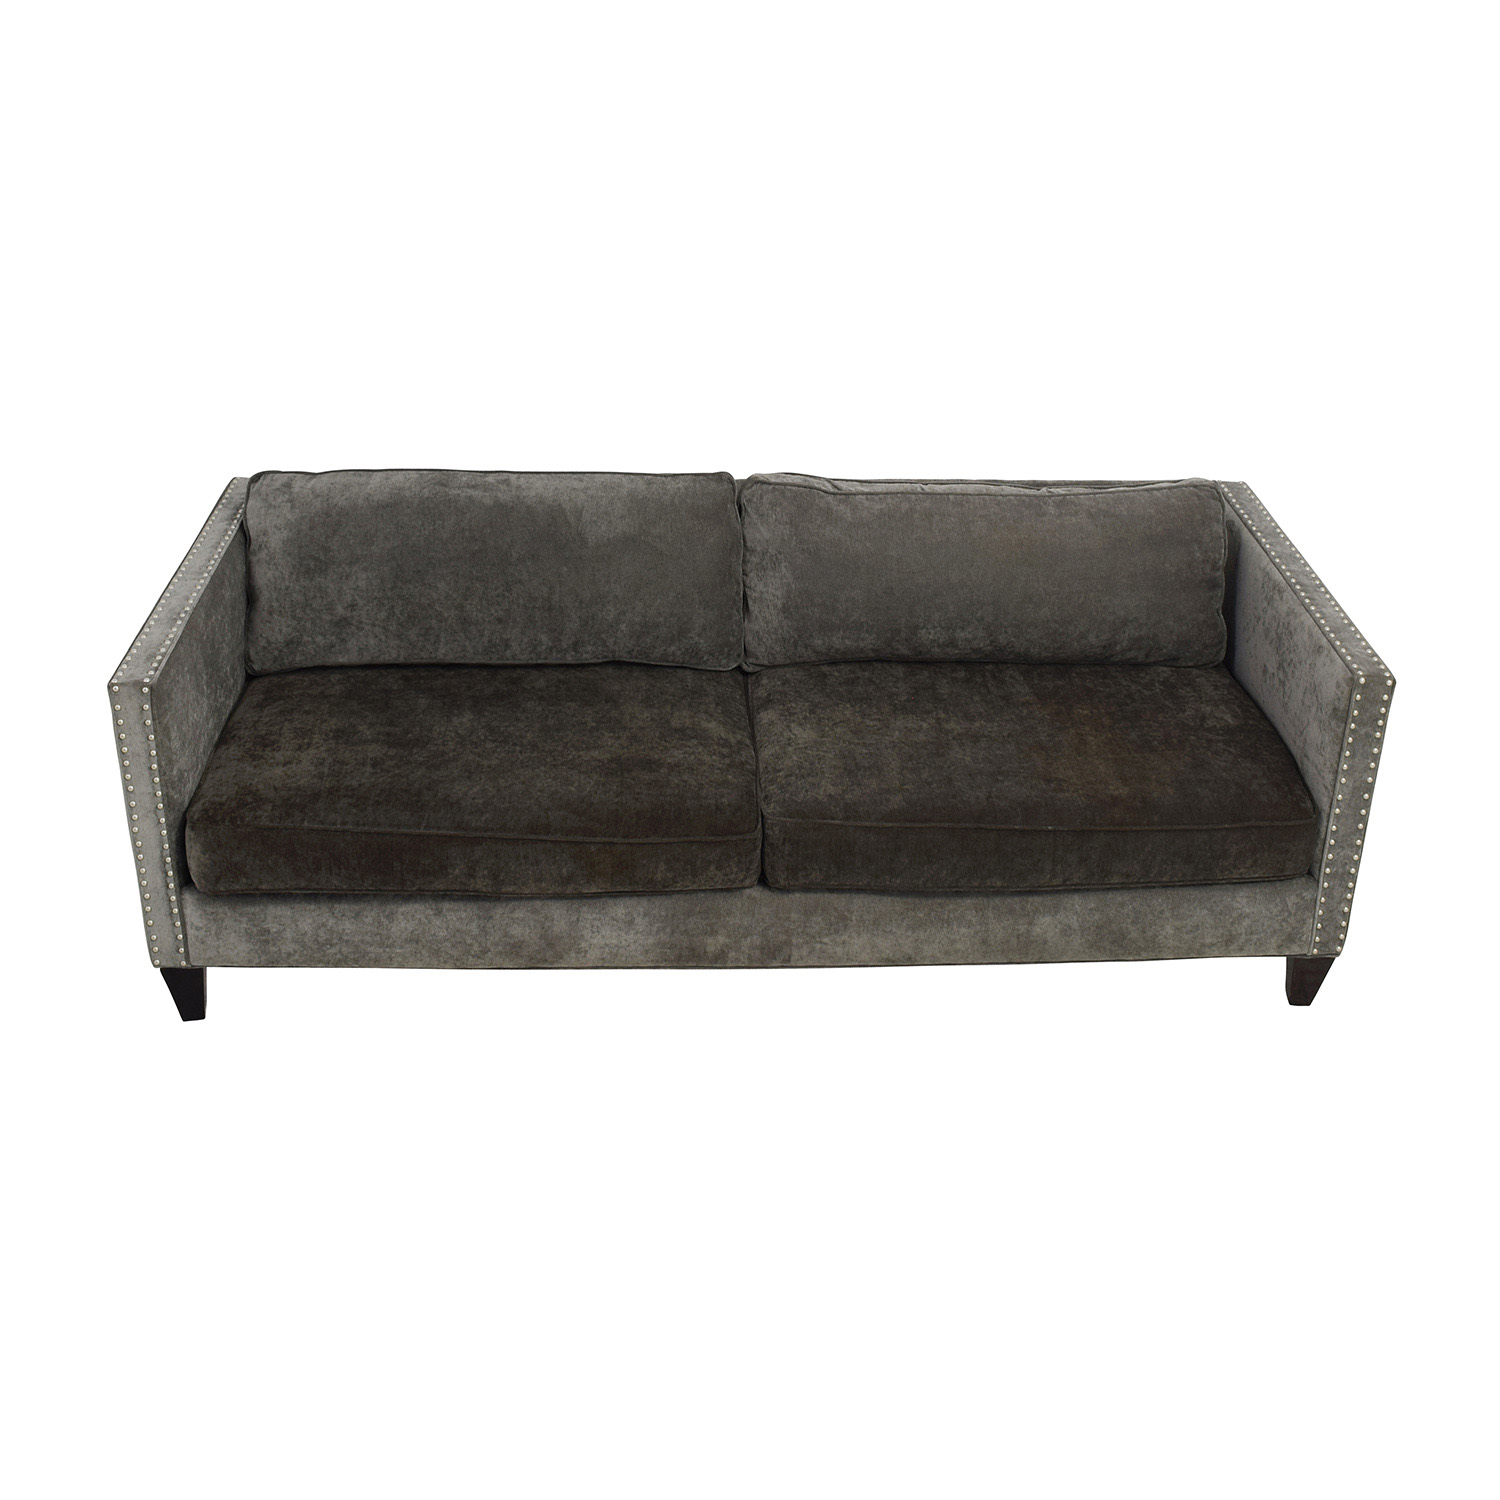 Rowe Furniture Mitchell Grey Studded Sofa / Sofas